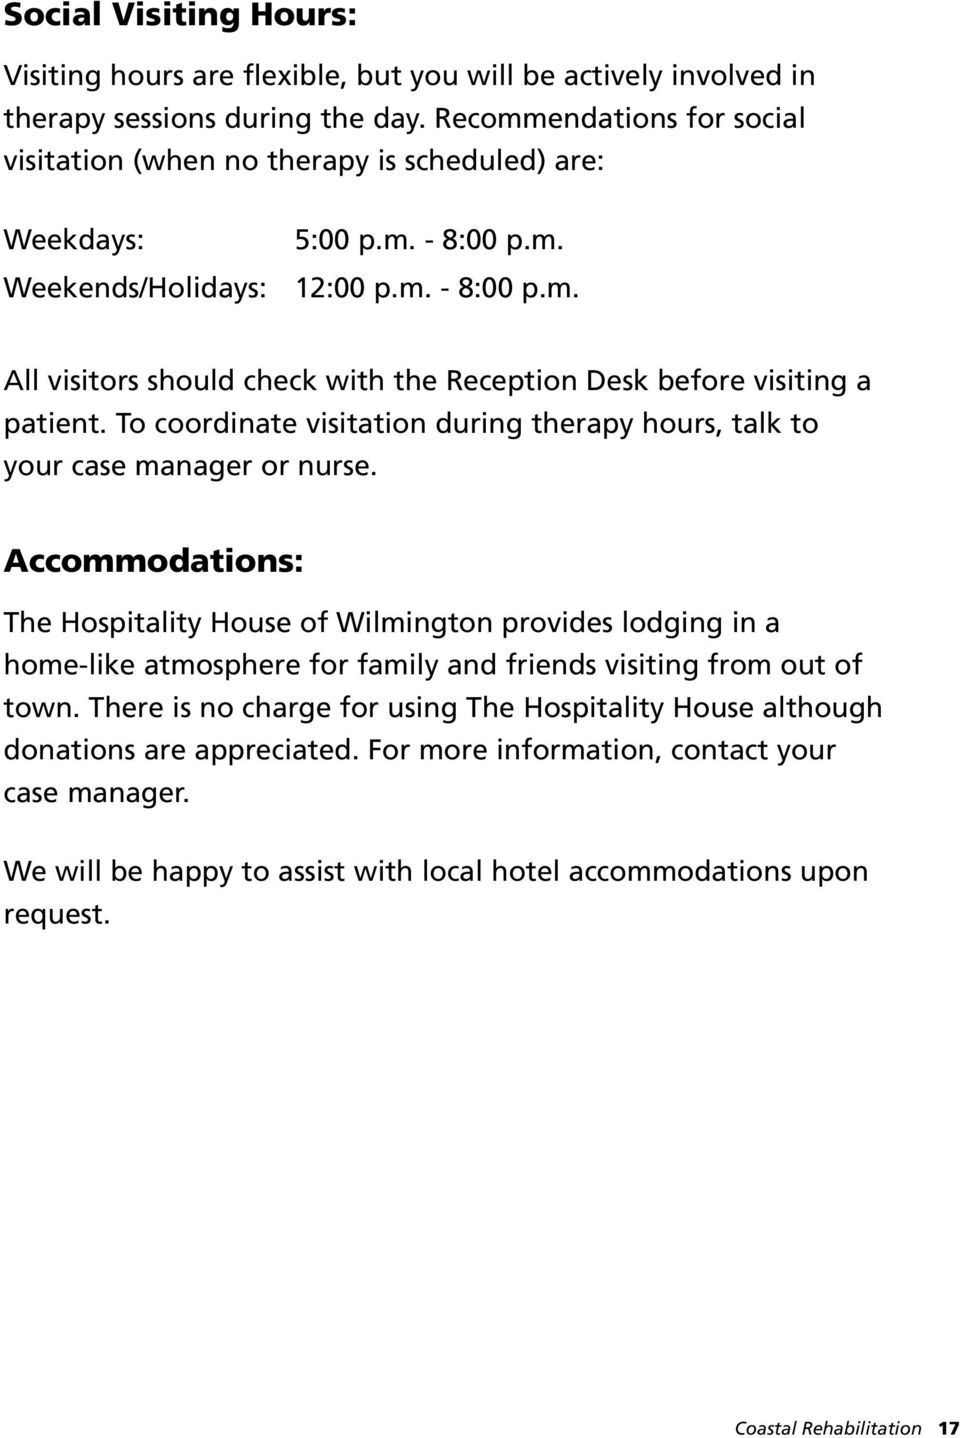 To coordinate visitation during therapy hours, talk to your case manager or nurse.